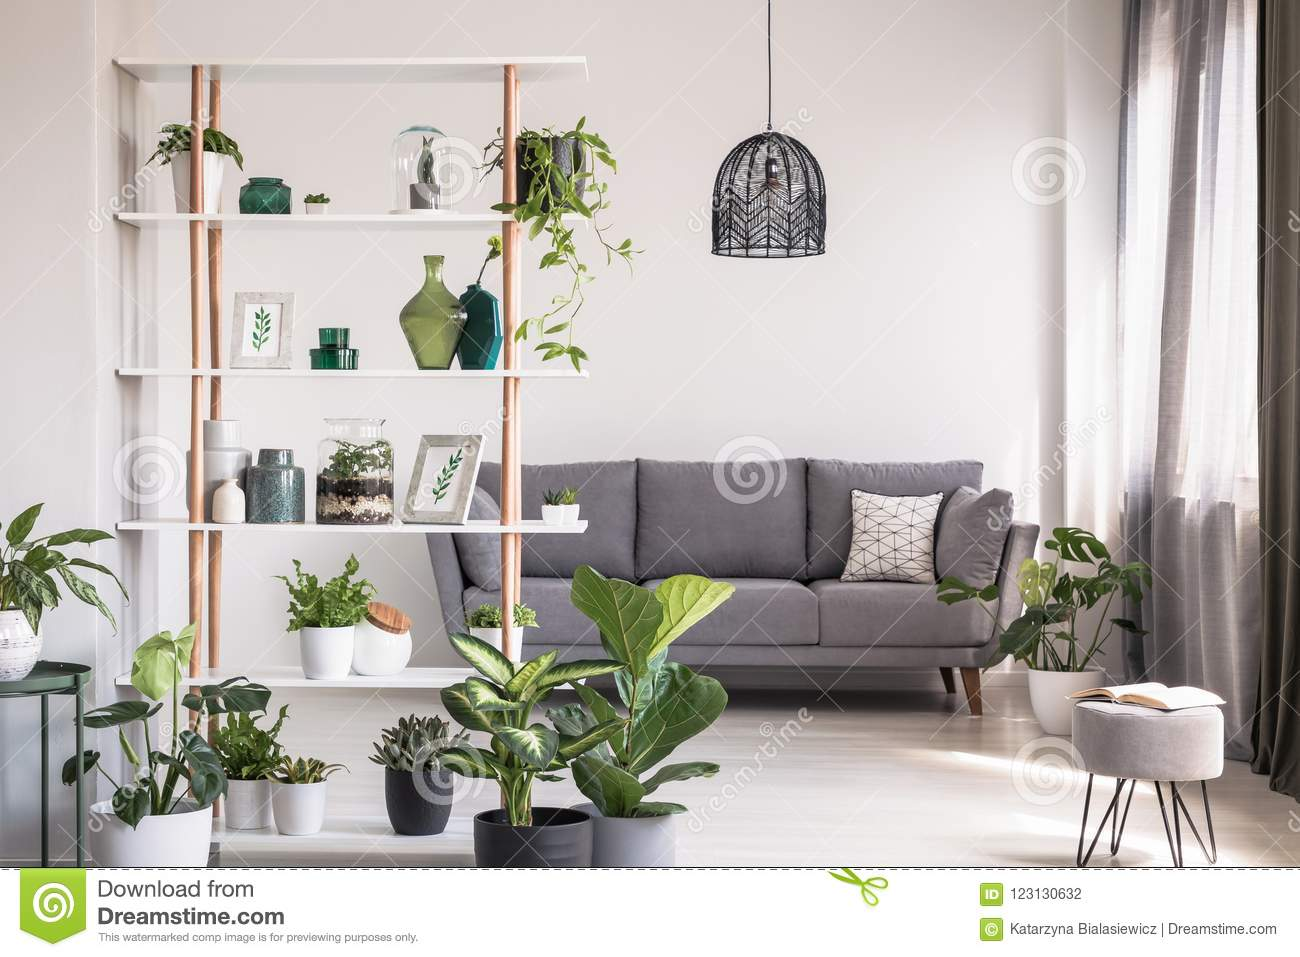 real photo modern living room interior shelf decorations plants grey sofa background concept